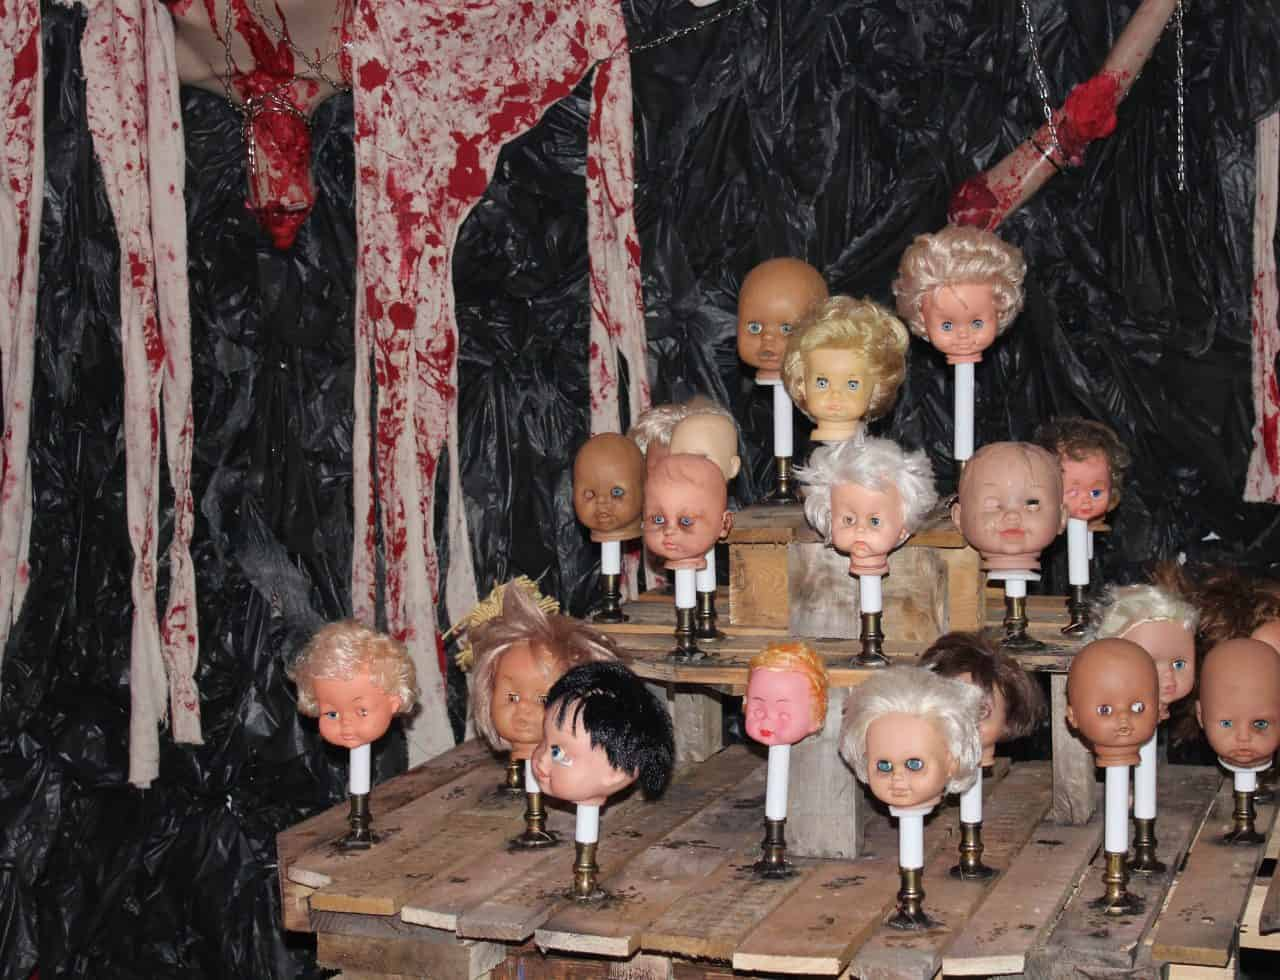 Bespoke Halloween Doll Props we created to complete the American Horror story Halloween venue dressing service for our client's birthday party.